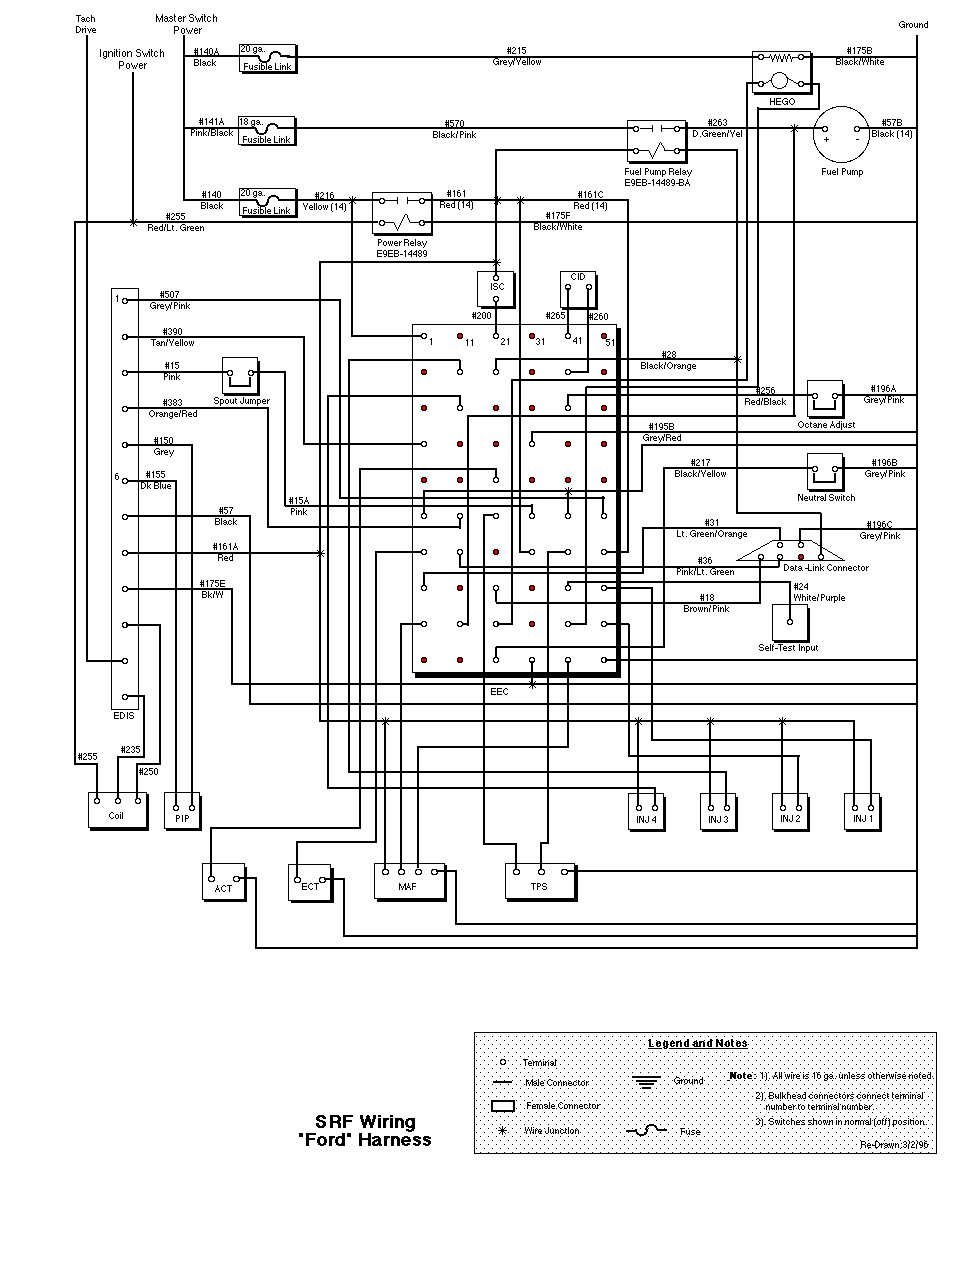 6c278 l9000 wiring diagram digital resources 1994 ford l9000 wiring -diagram ford aeromax l9000 wiring schematic #5